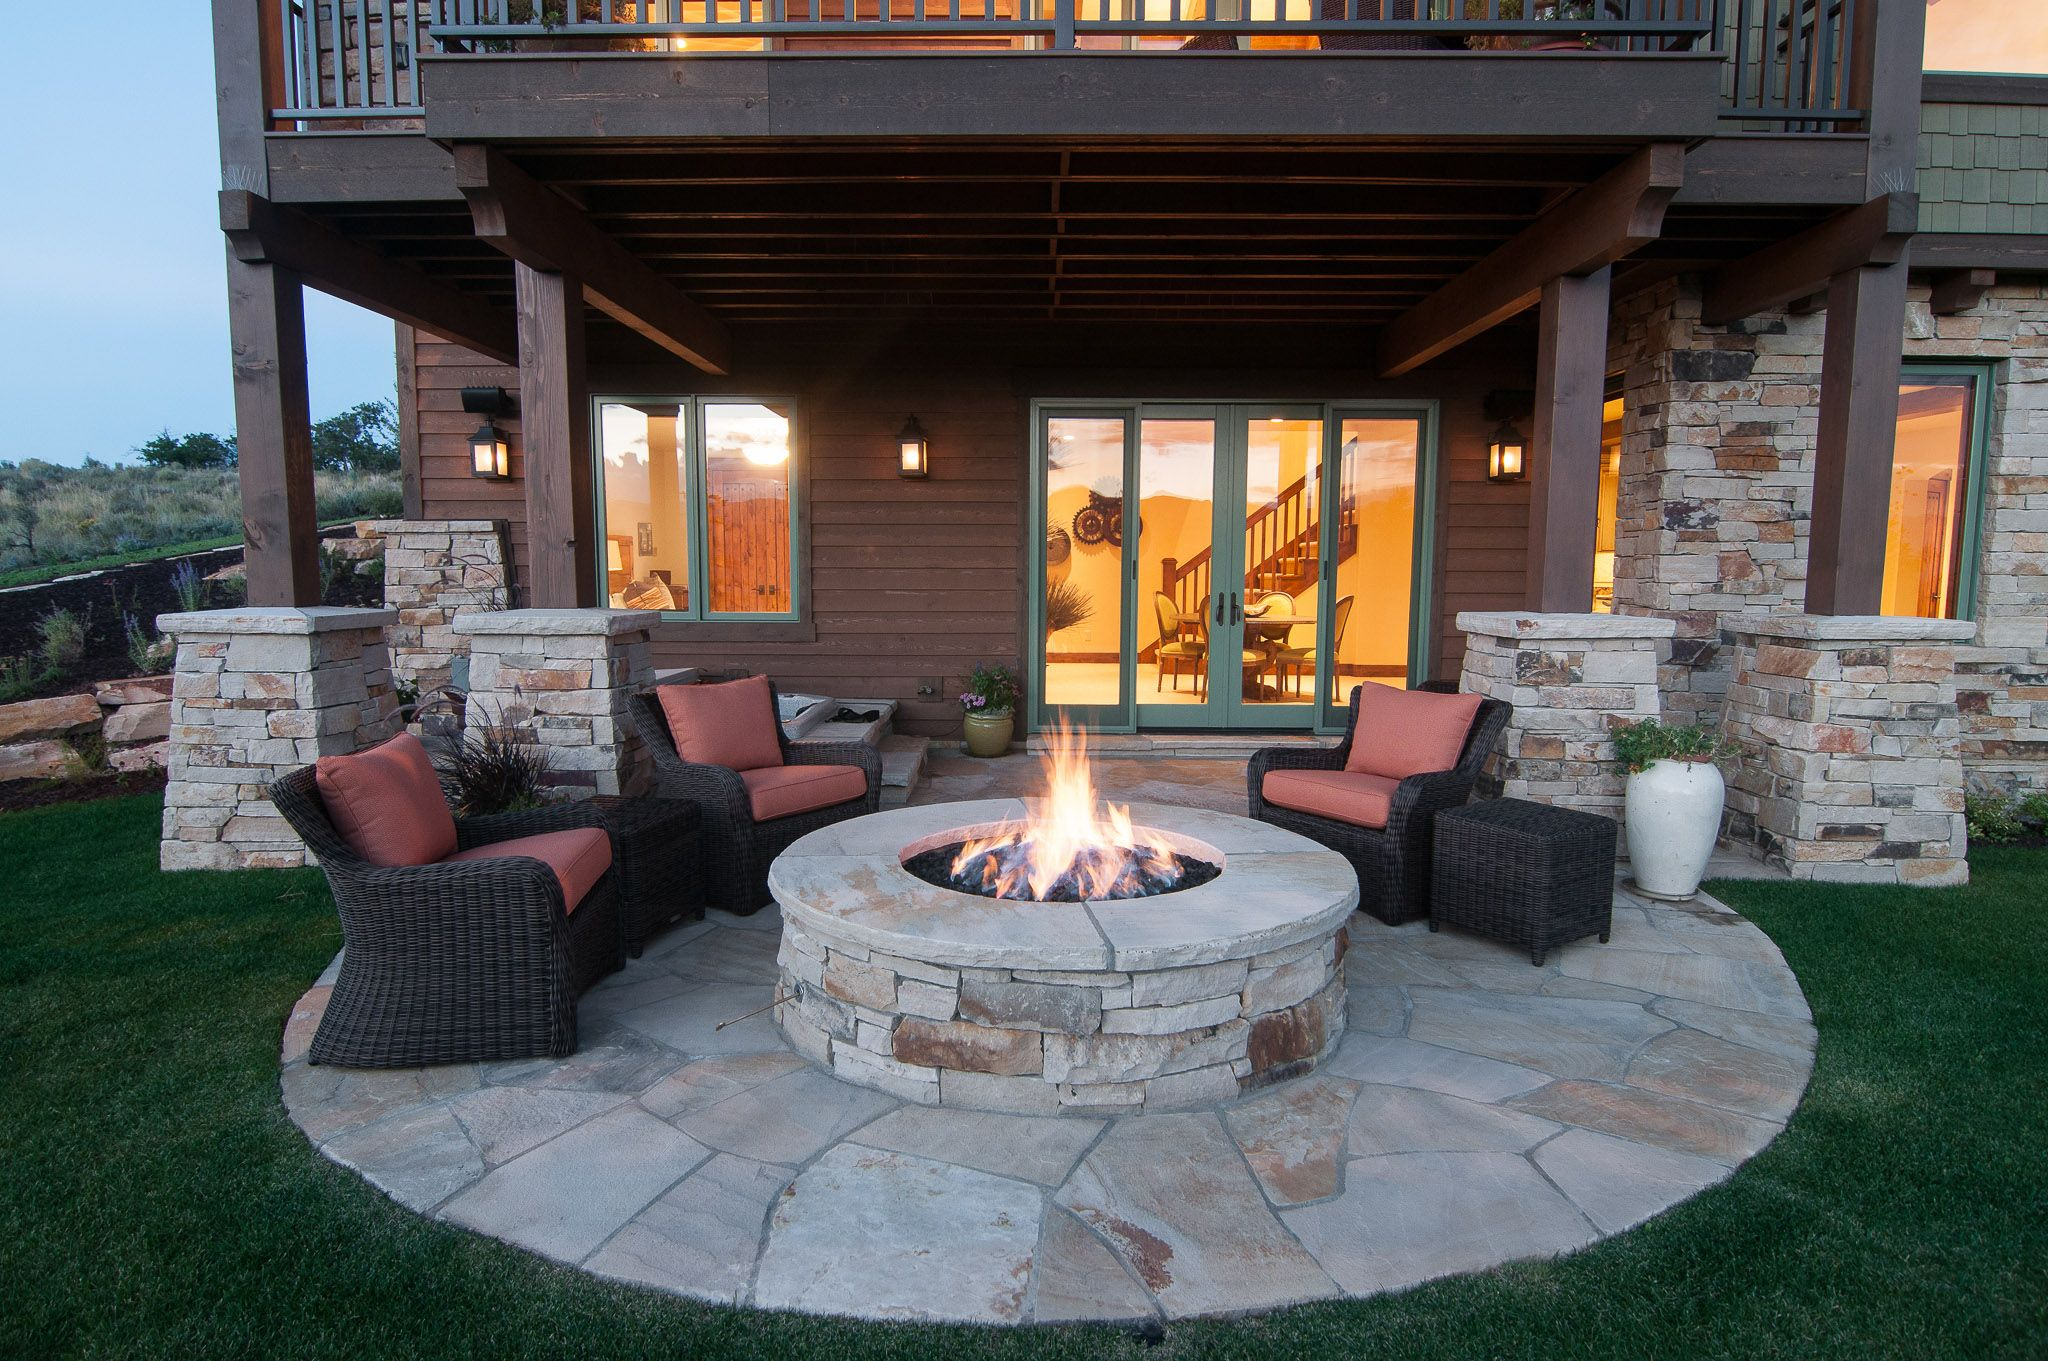 Park City Showcase of Homes 2013 in Tuhaye — CAMEO HOMES